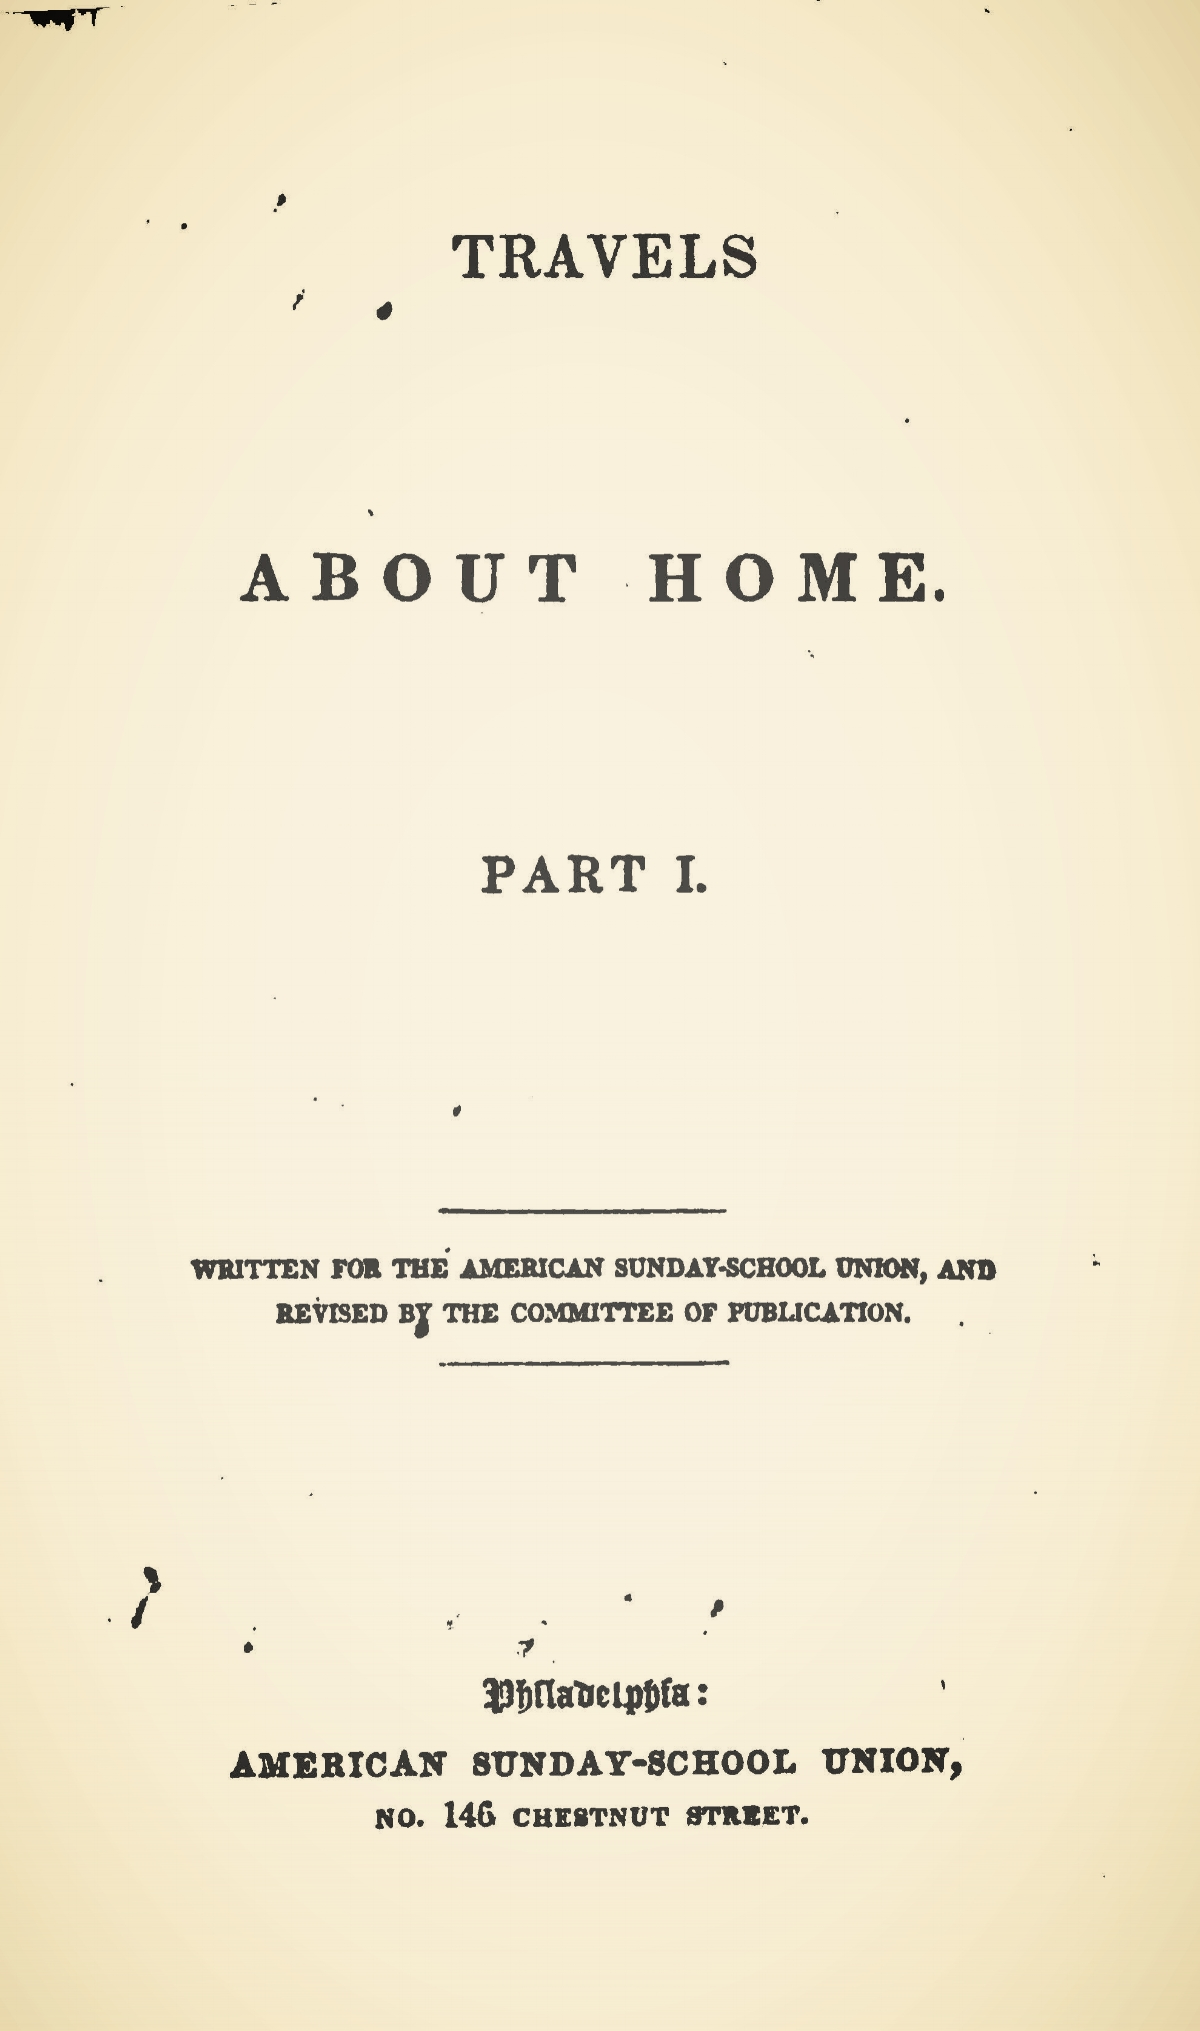 Alexander, James Waddel, Travels About Home Title Page.jpg